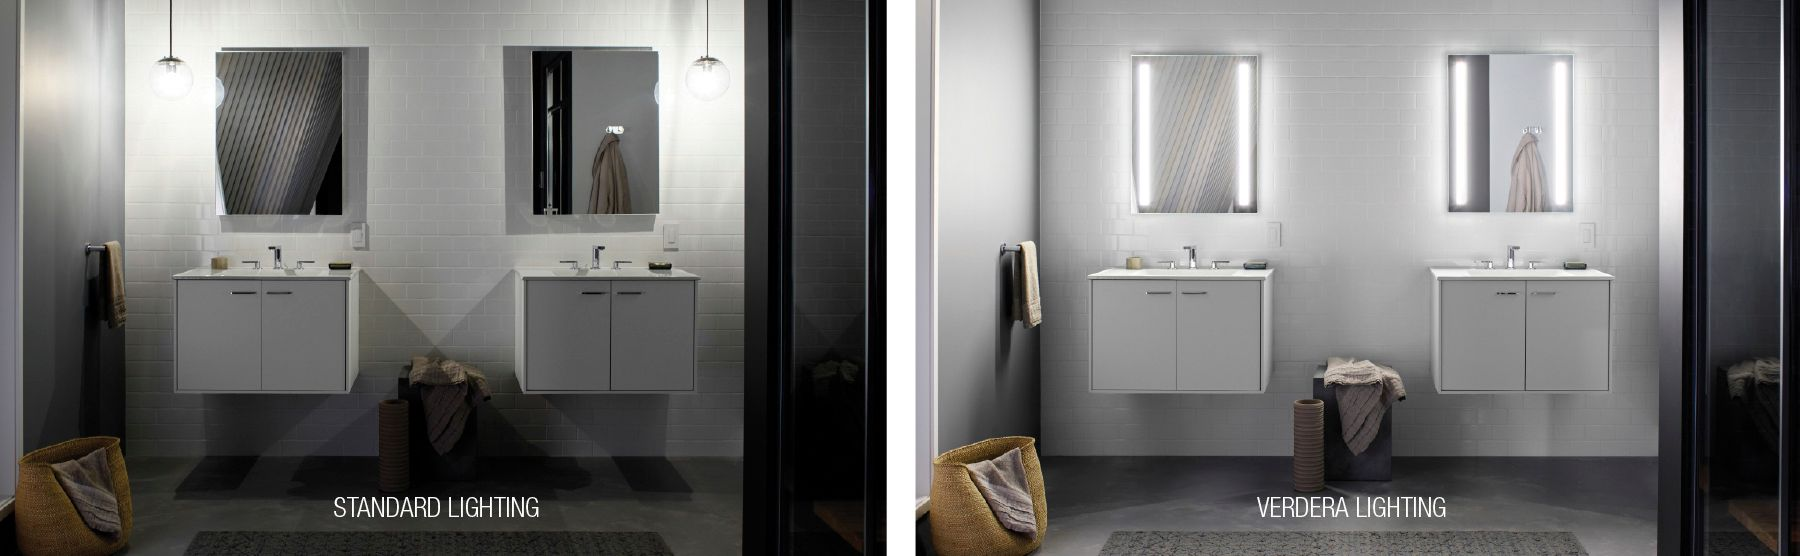 Medicine Cabinet Mirrors Verdera Medicine Cabinets Bathroom New Products Bathroom Kohler